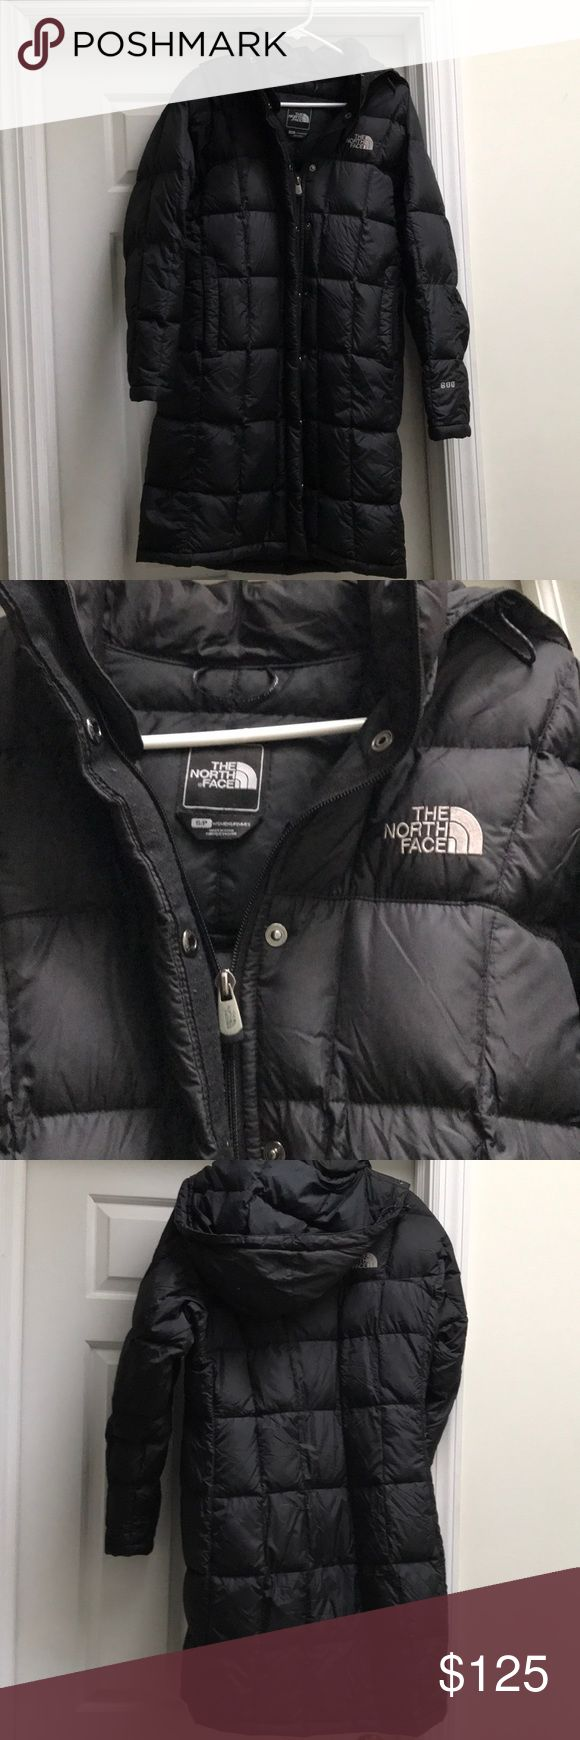 """Long North Face 600 Coat Measures 35"""" in length and has 2 outer pockets with zippers and 1 inside pocket. Like new! Removable hood. North Face Jackets & Coats Puffers"""